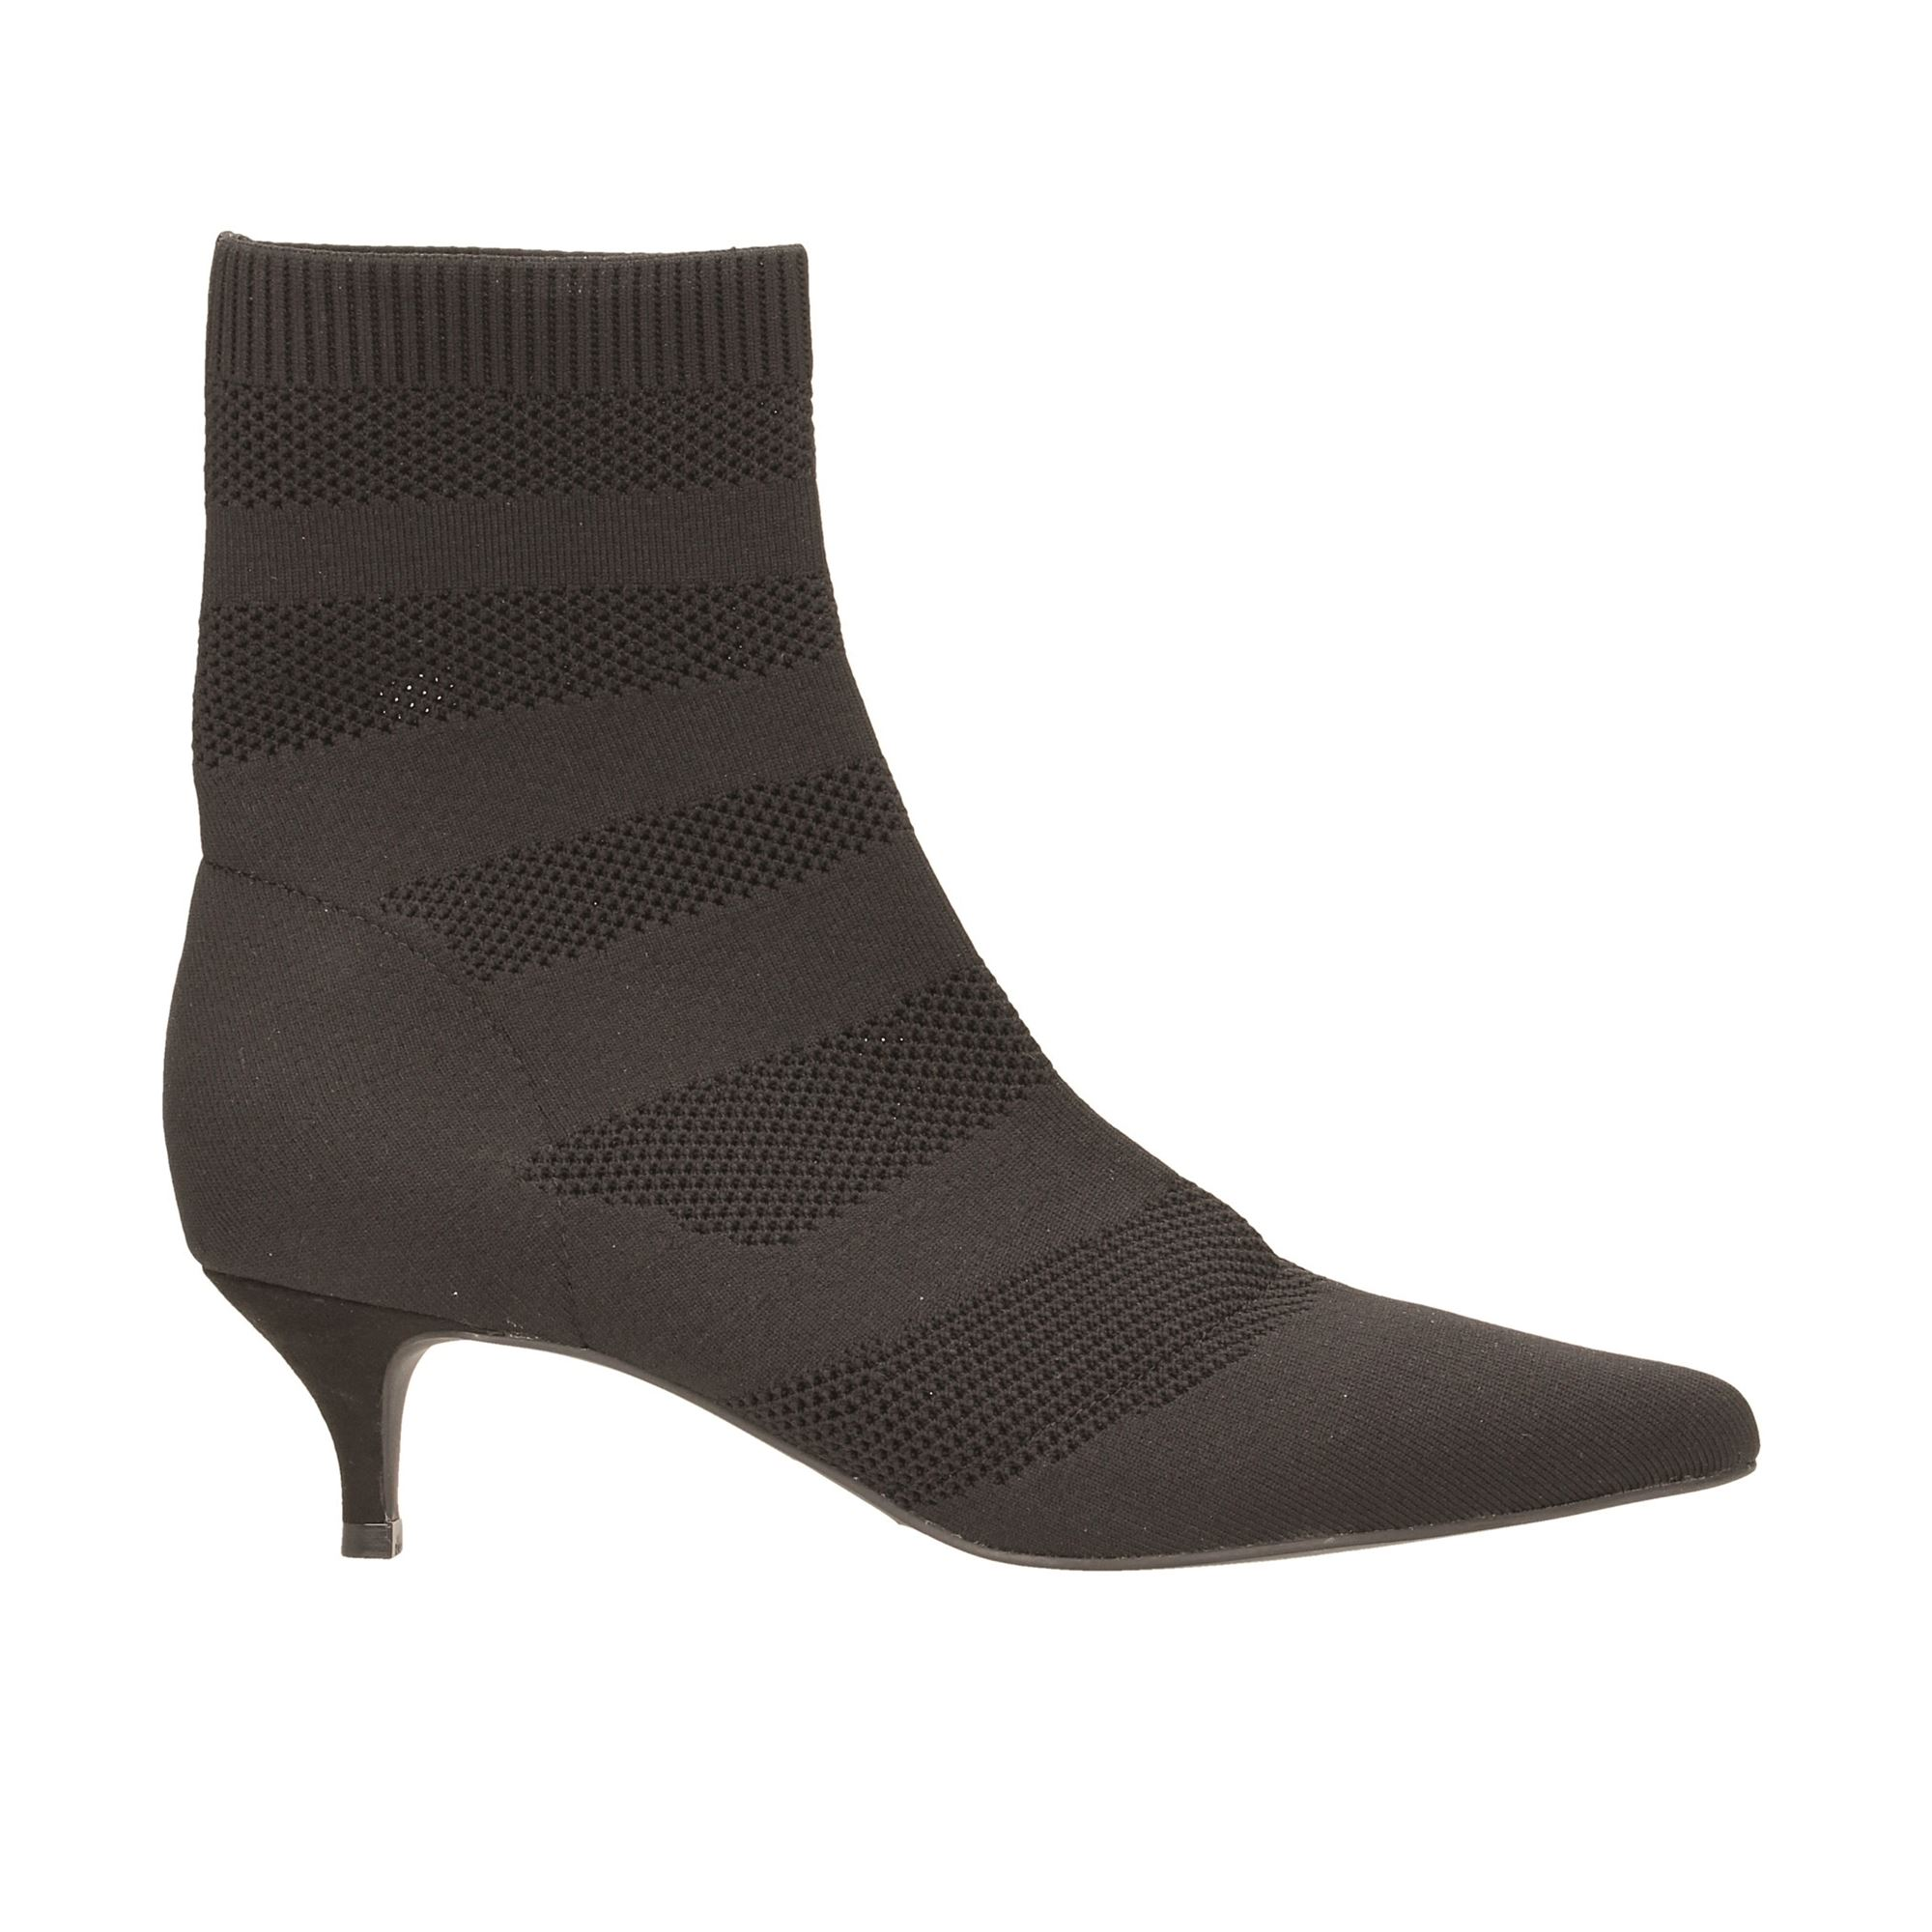 Tata Italia Shoes Woman Stivaletti Black 267301-14A